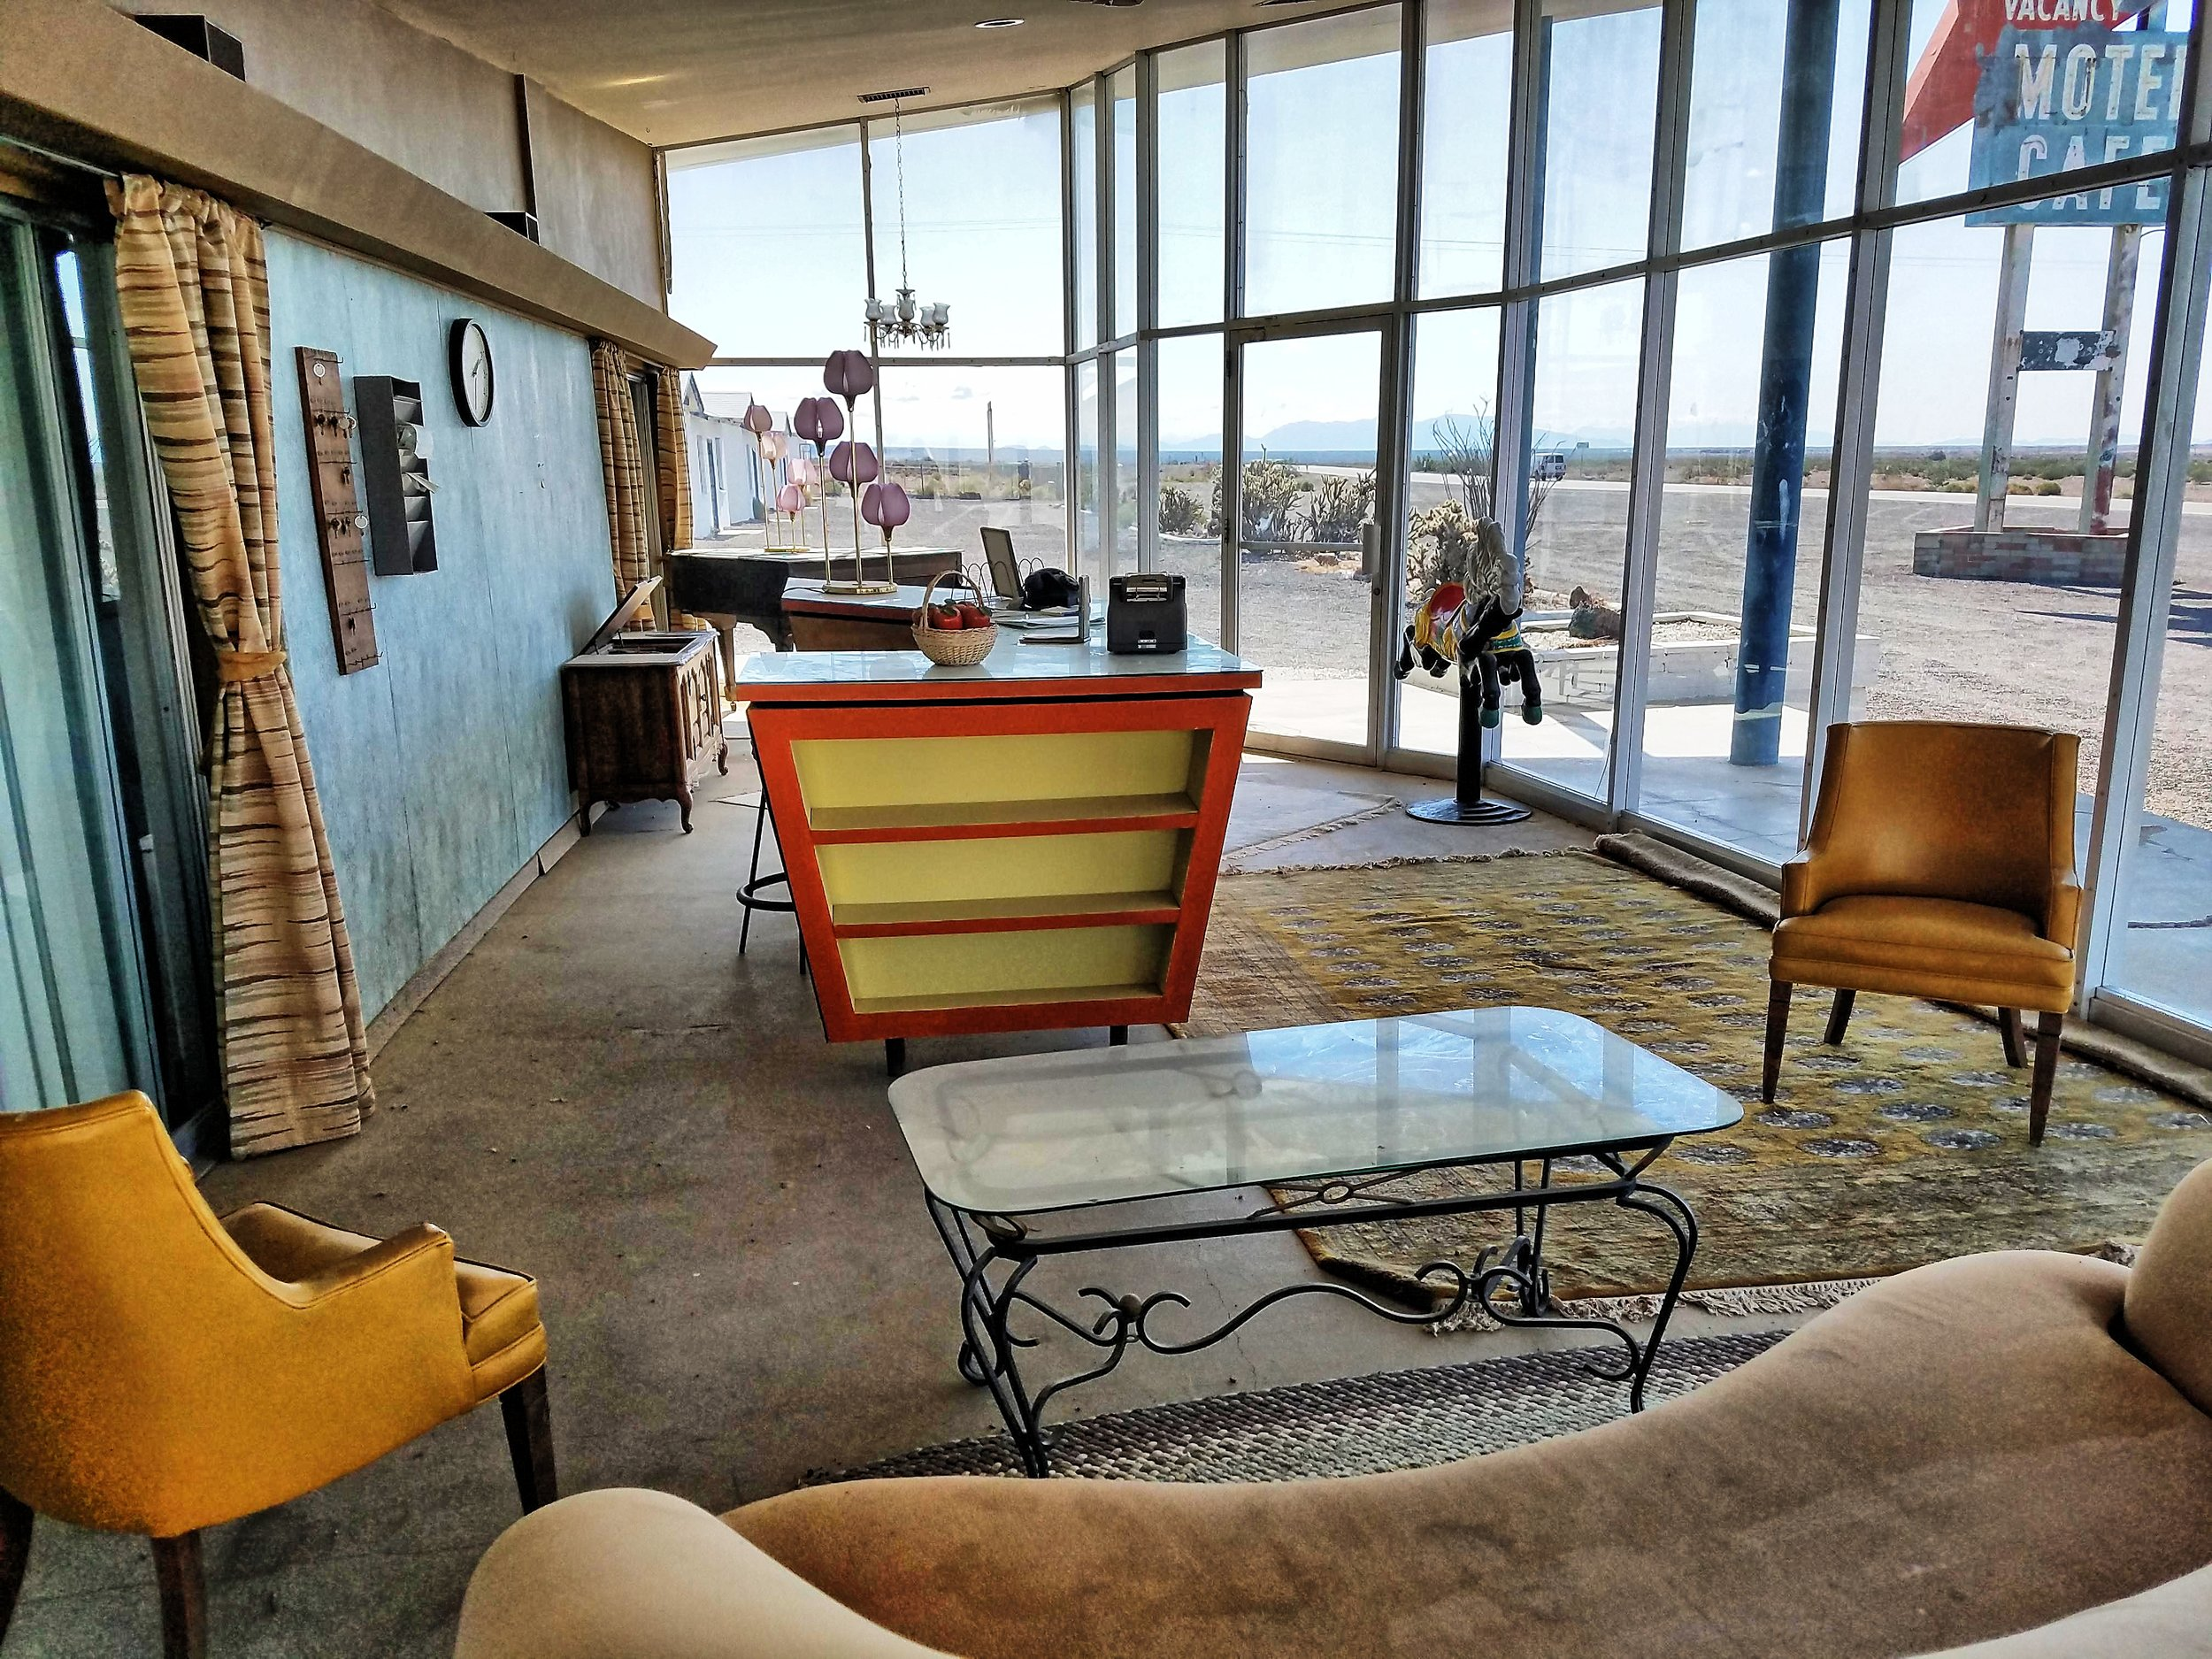 Photo taken inside the guest reception office. Because we are constantly gaining new Route 66 and Amboy merchandise, apparel, and collectible souvenirs, we plan on remodeling the interior of the guest reception office and relocating the gift shop inside.